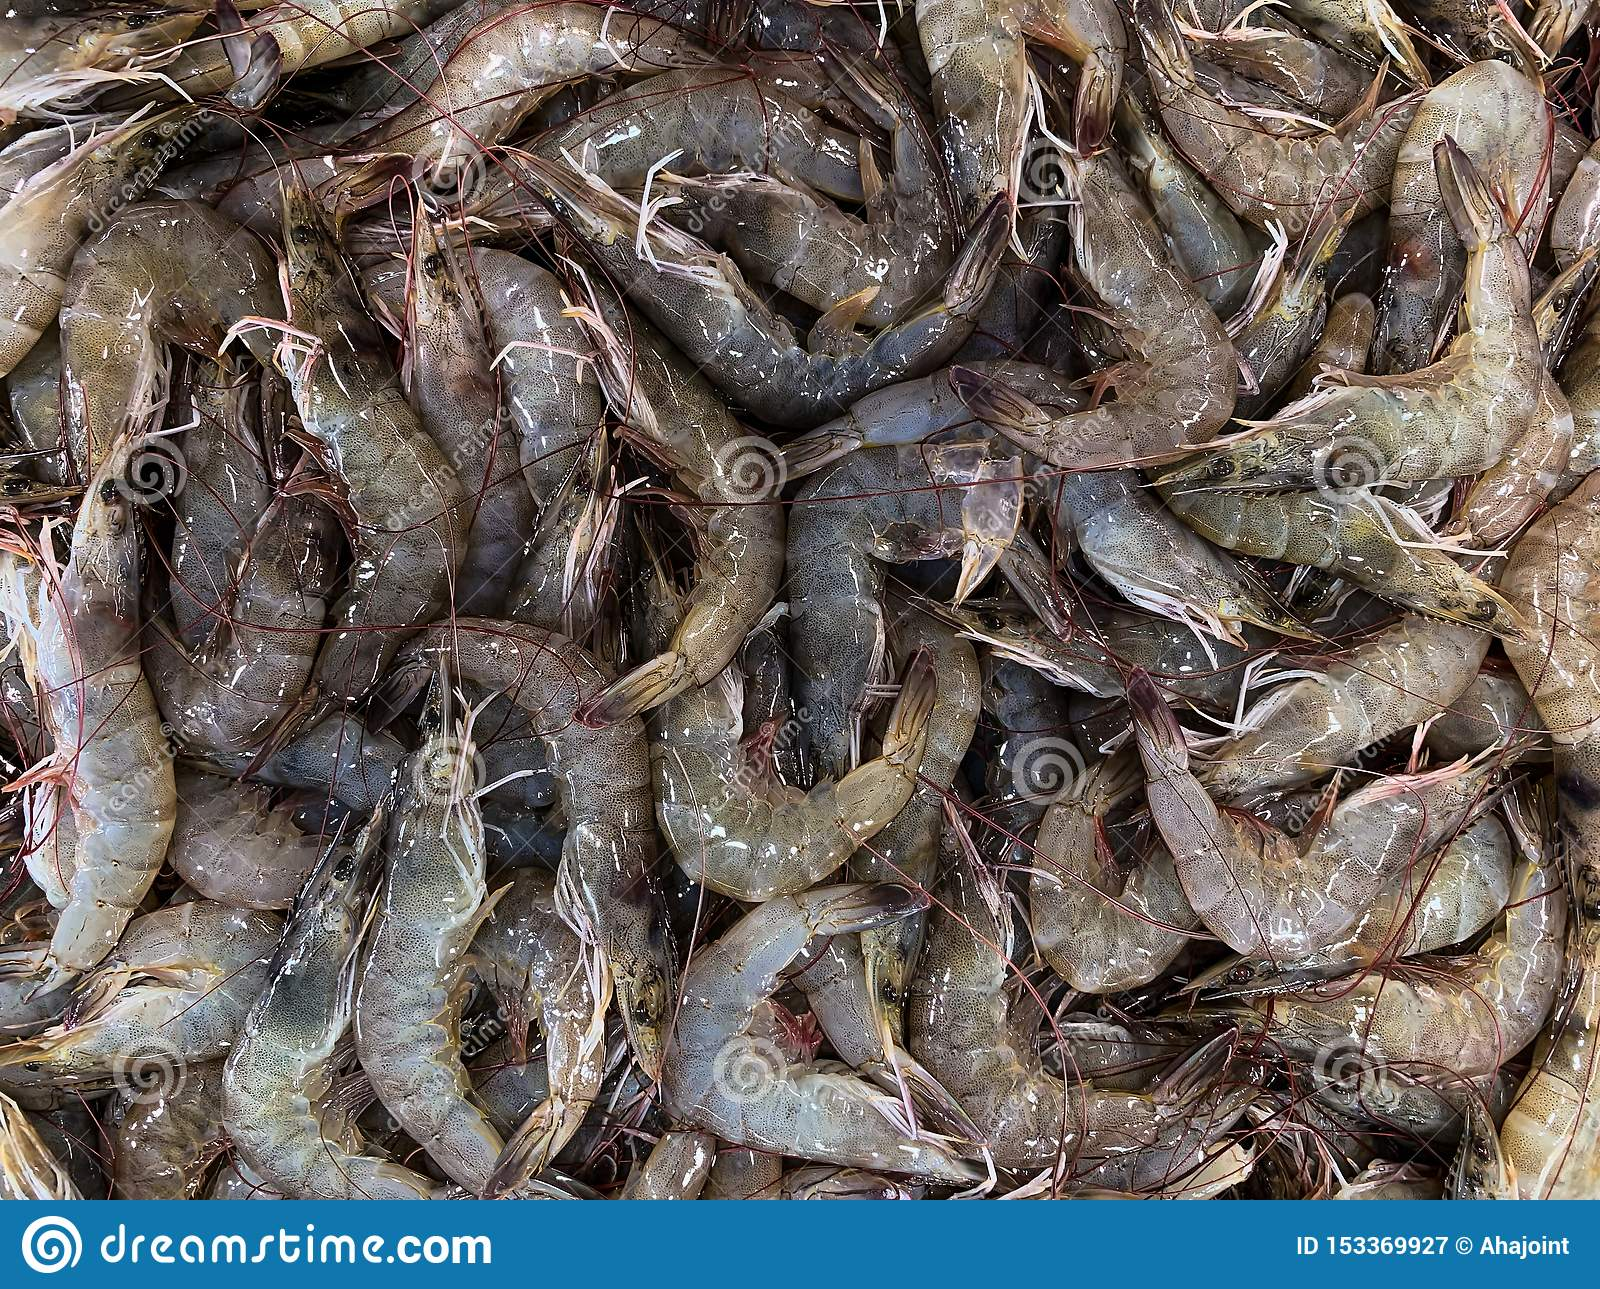 Fresh shrimp at the market for sell